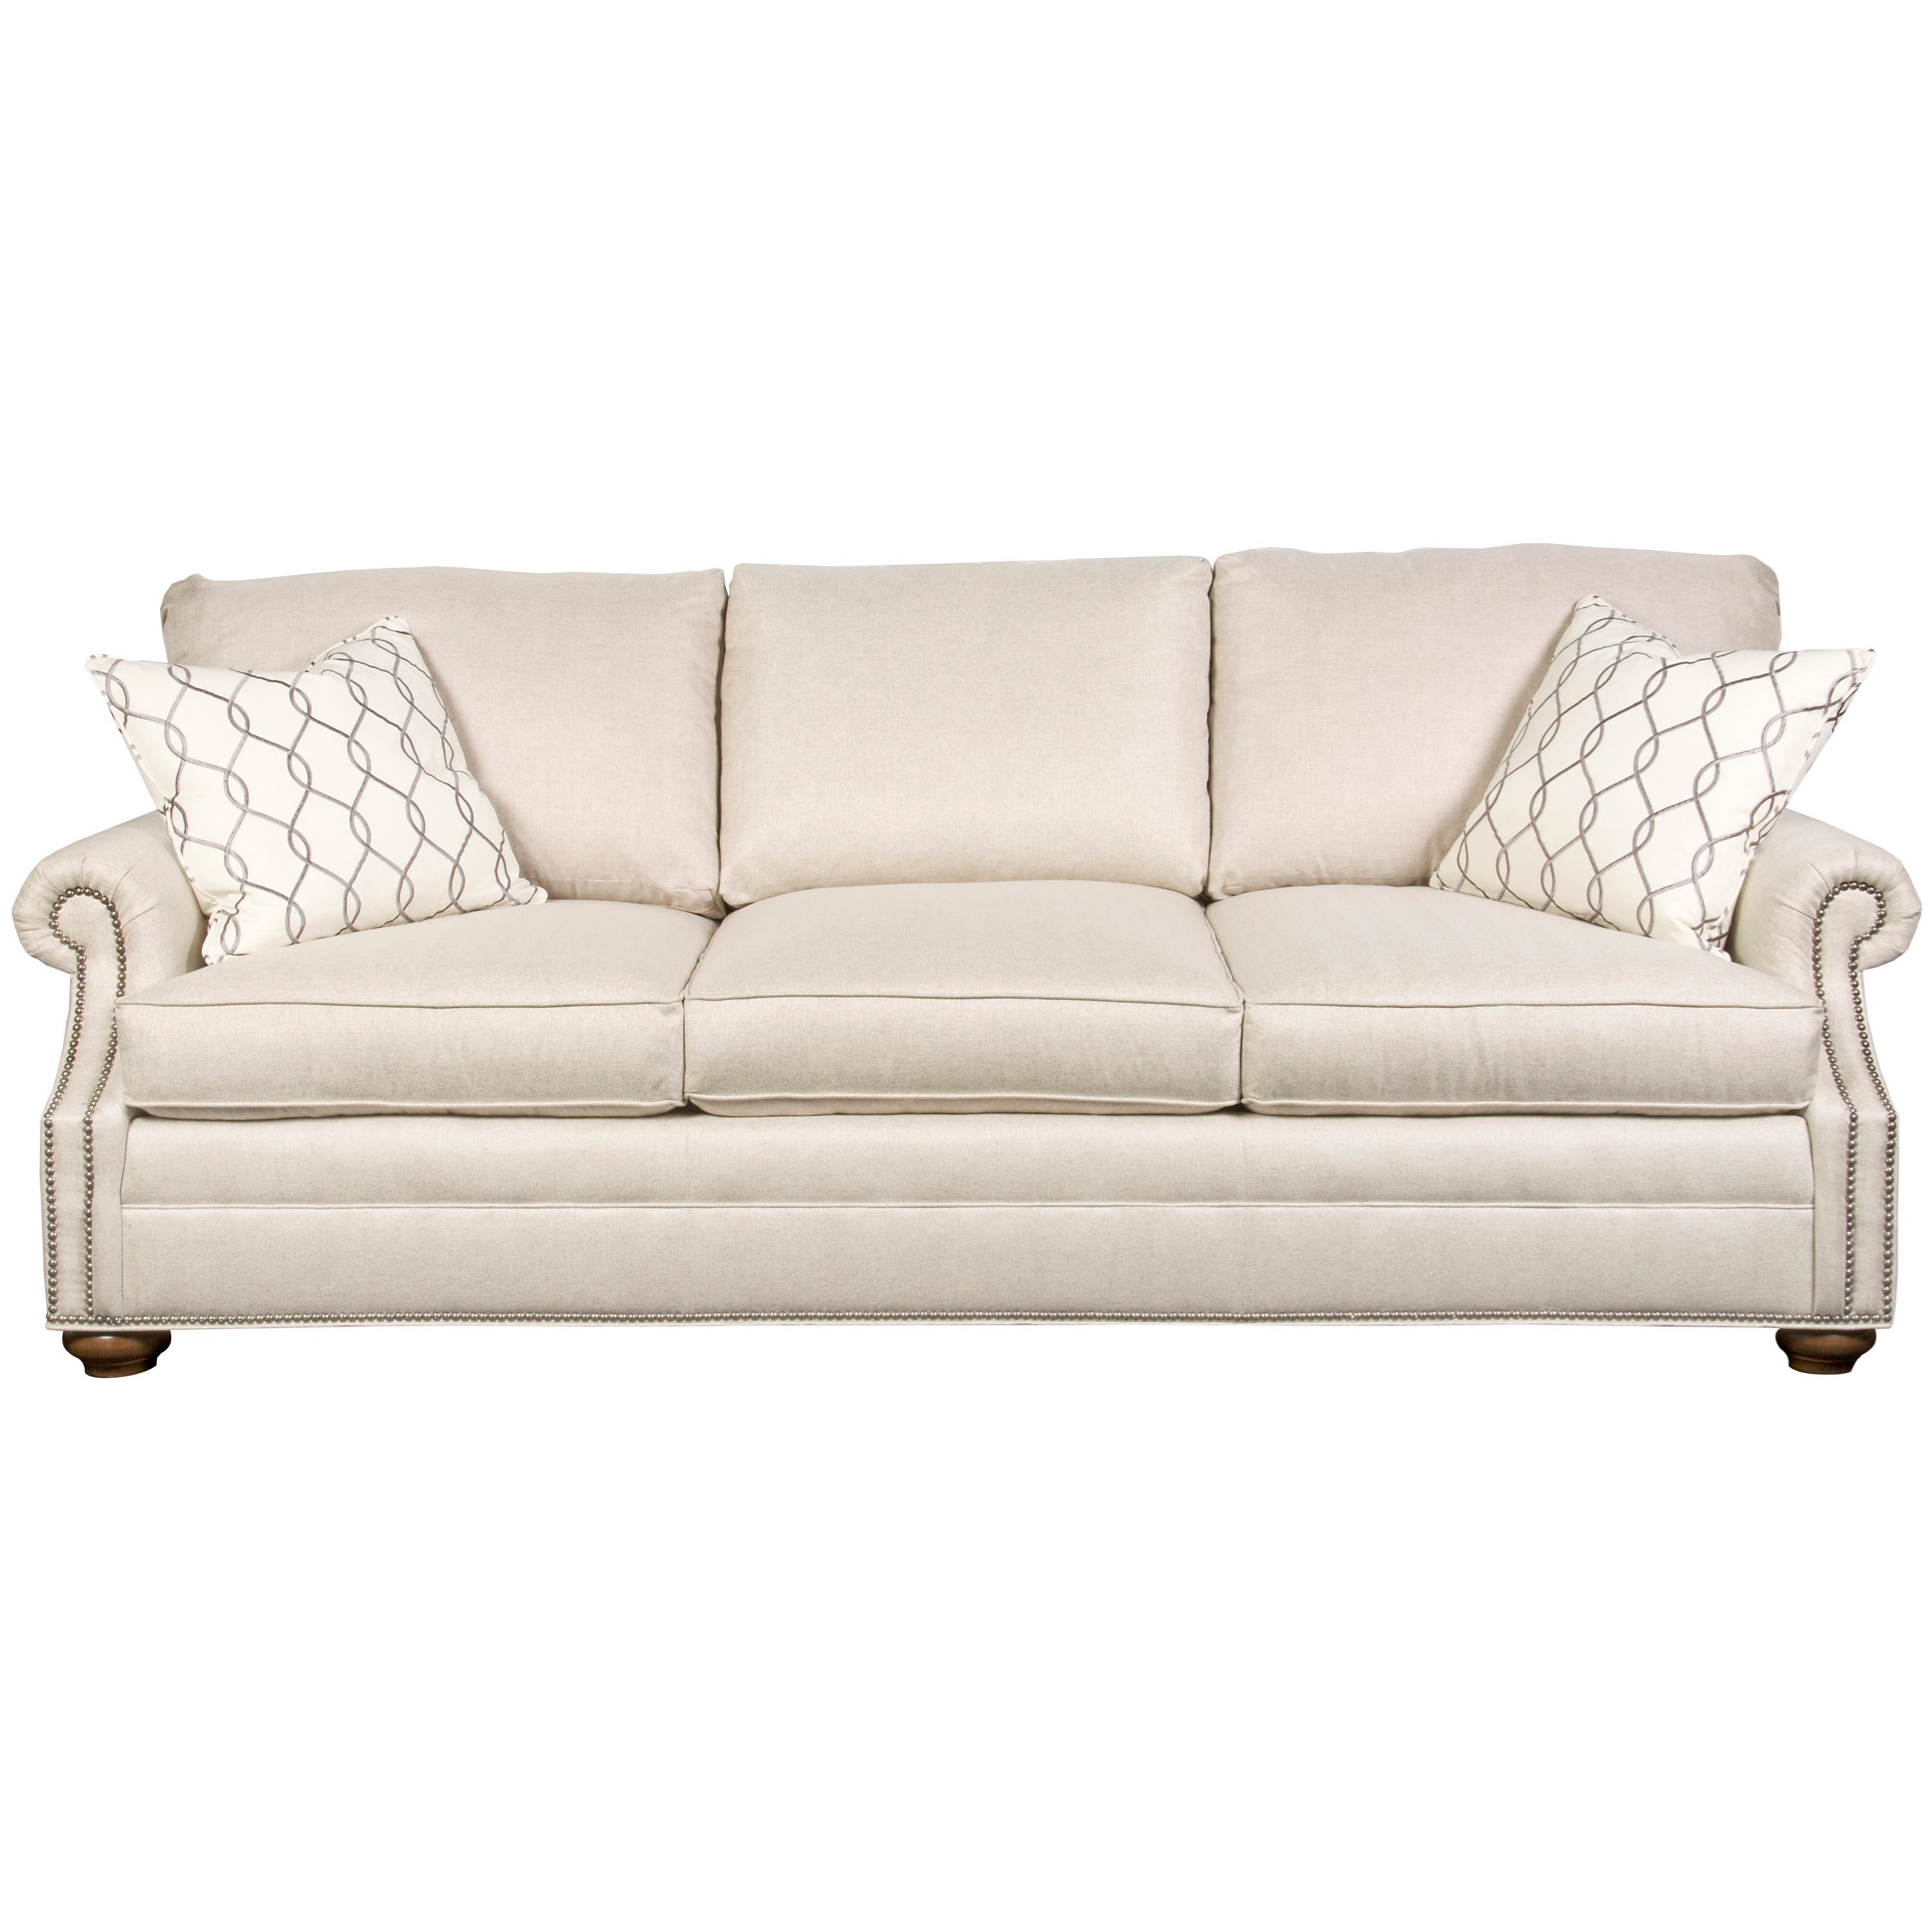 American Bungalow Gutherly Sofa by Vanguard Furniture at Baer's Furniture